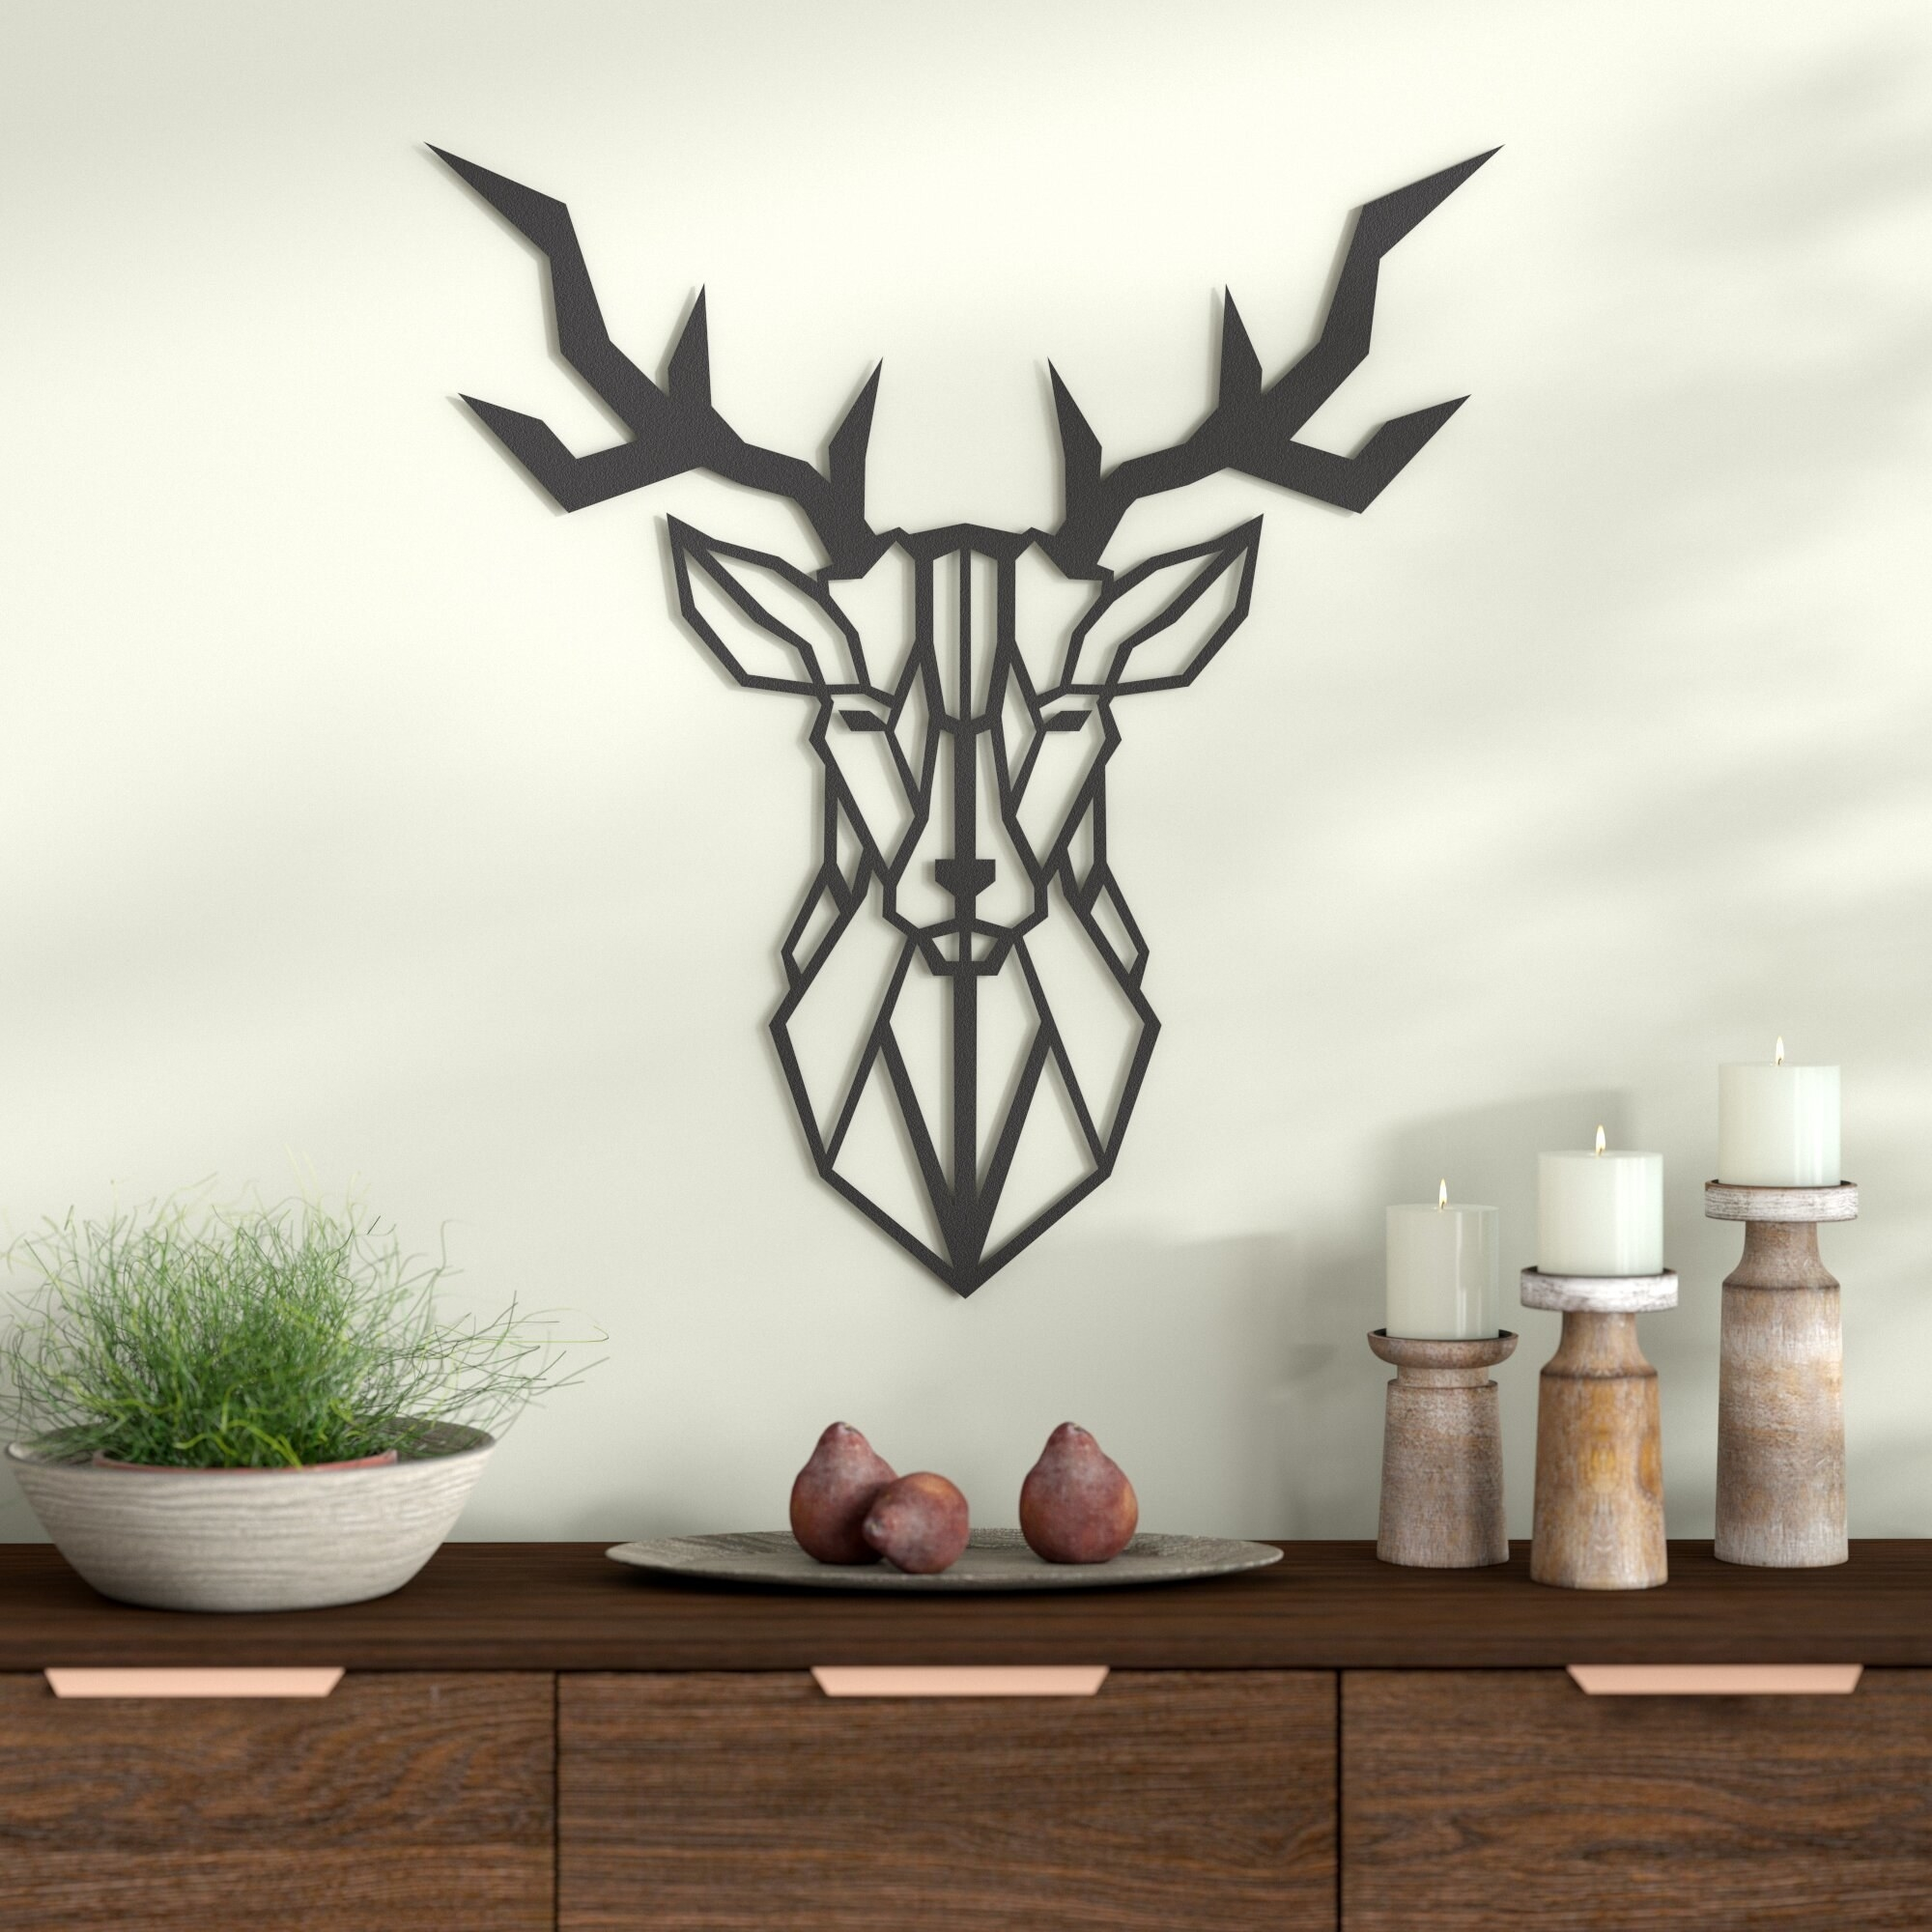 black deer decor mounted on a wall